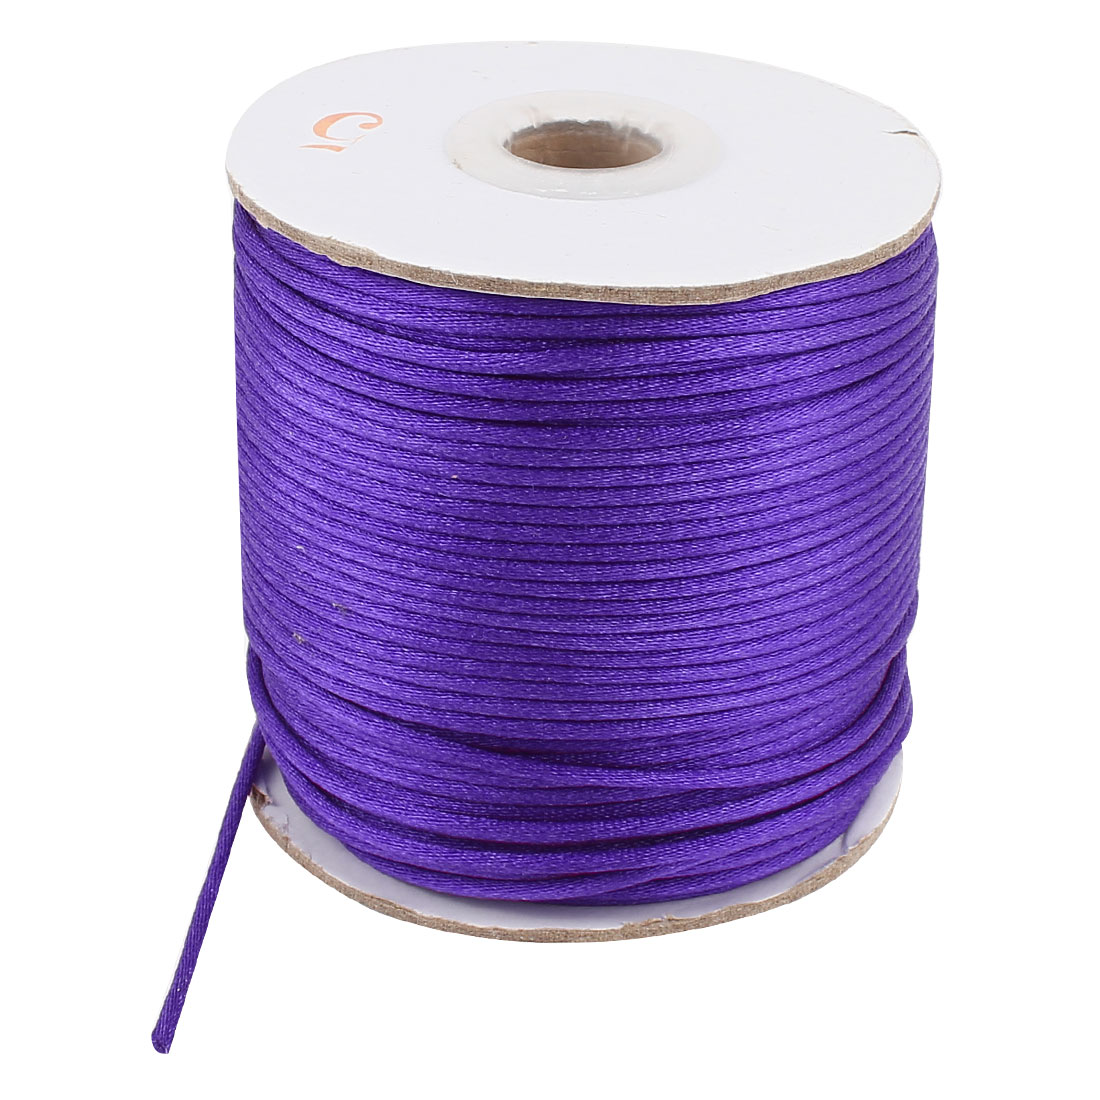 Purple Nylon Handcraft Art Line DIY Chinese Knot Rattail Cord